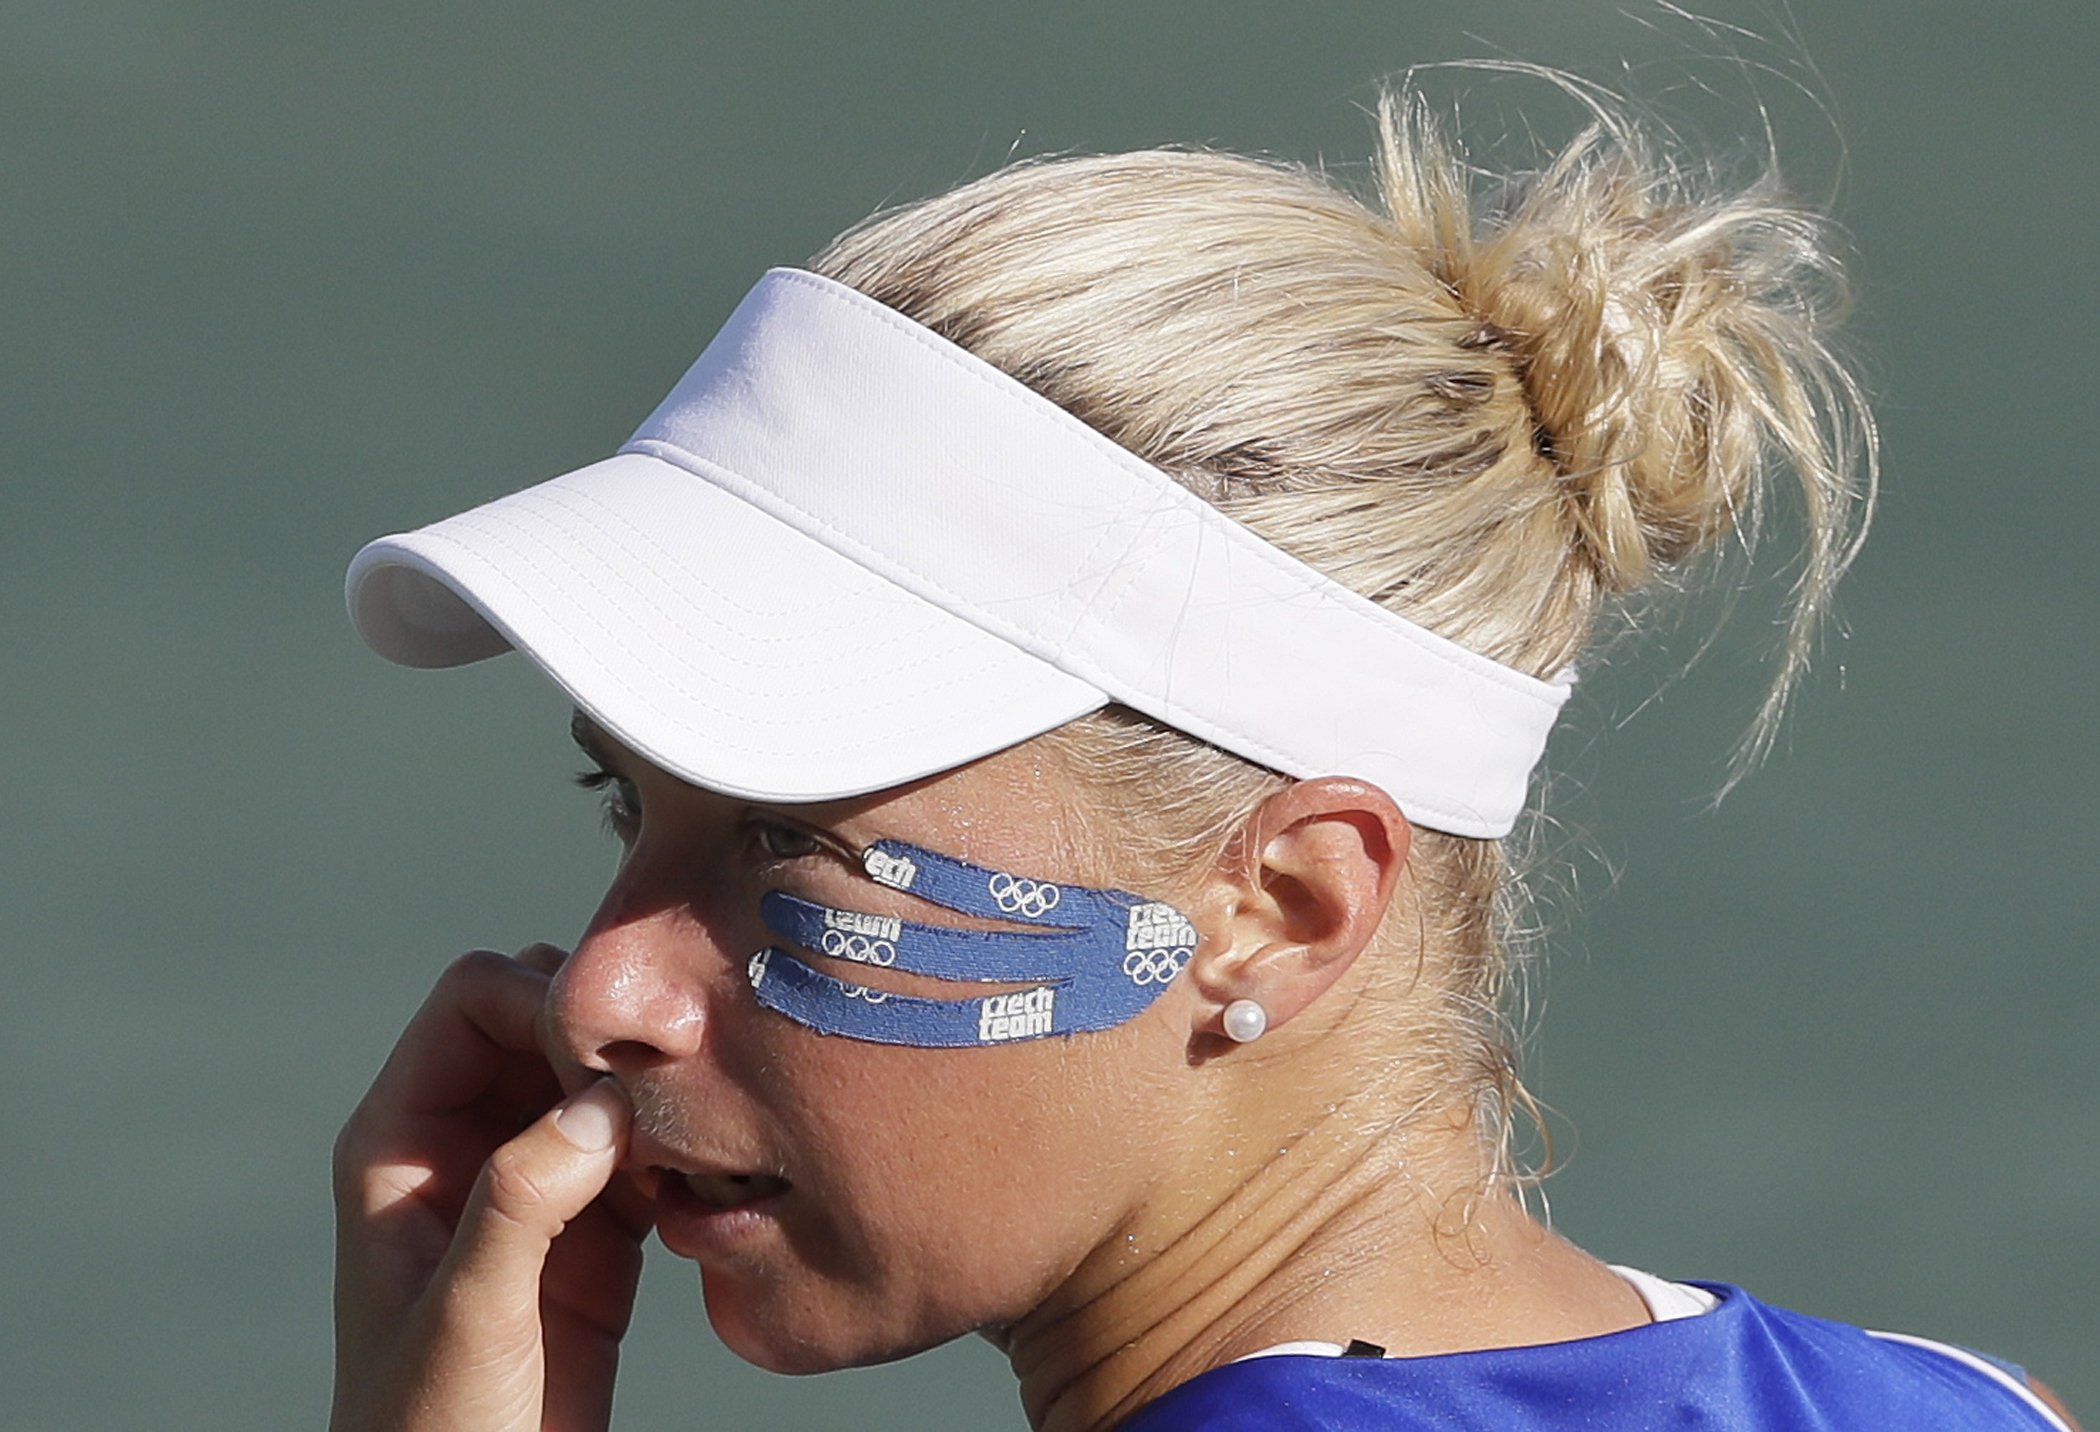 Tape around the eye of Andrea Hlavackova as she plays with partner Lucie Hradecka against Lucie Safarova and Barbora Strycova all of the Czech Republic during their women's doubles bronze medal tennis match at the 2016 Summer Olympics in Rio de Janeiro, B